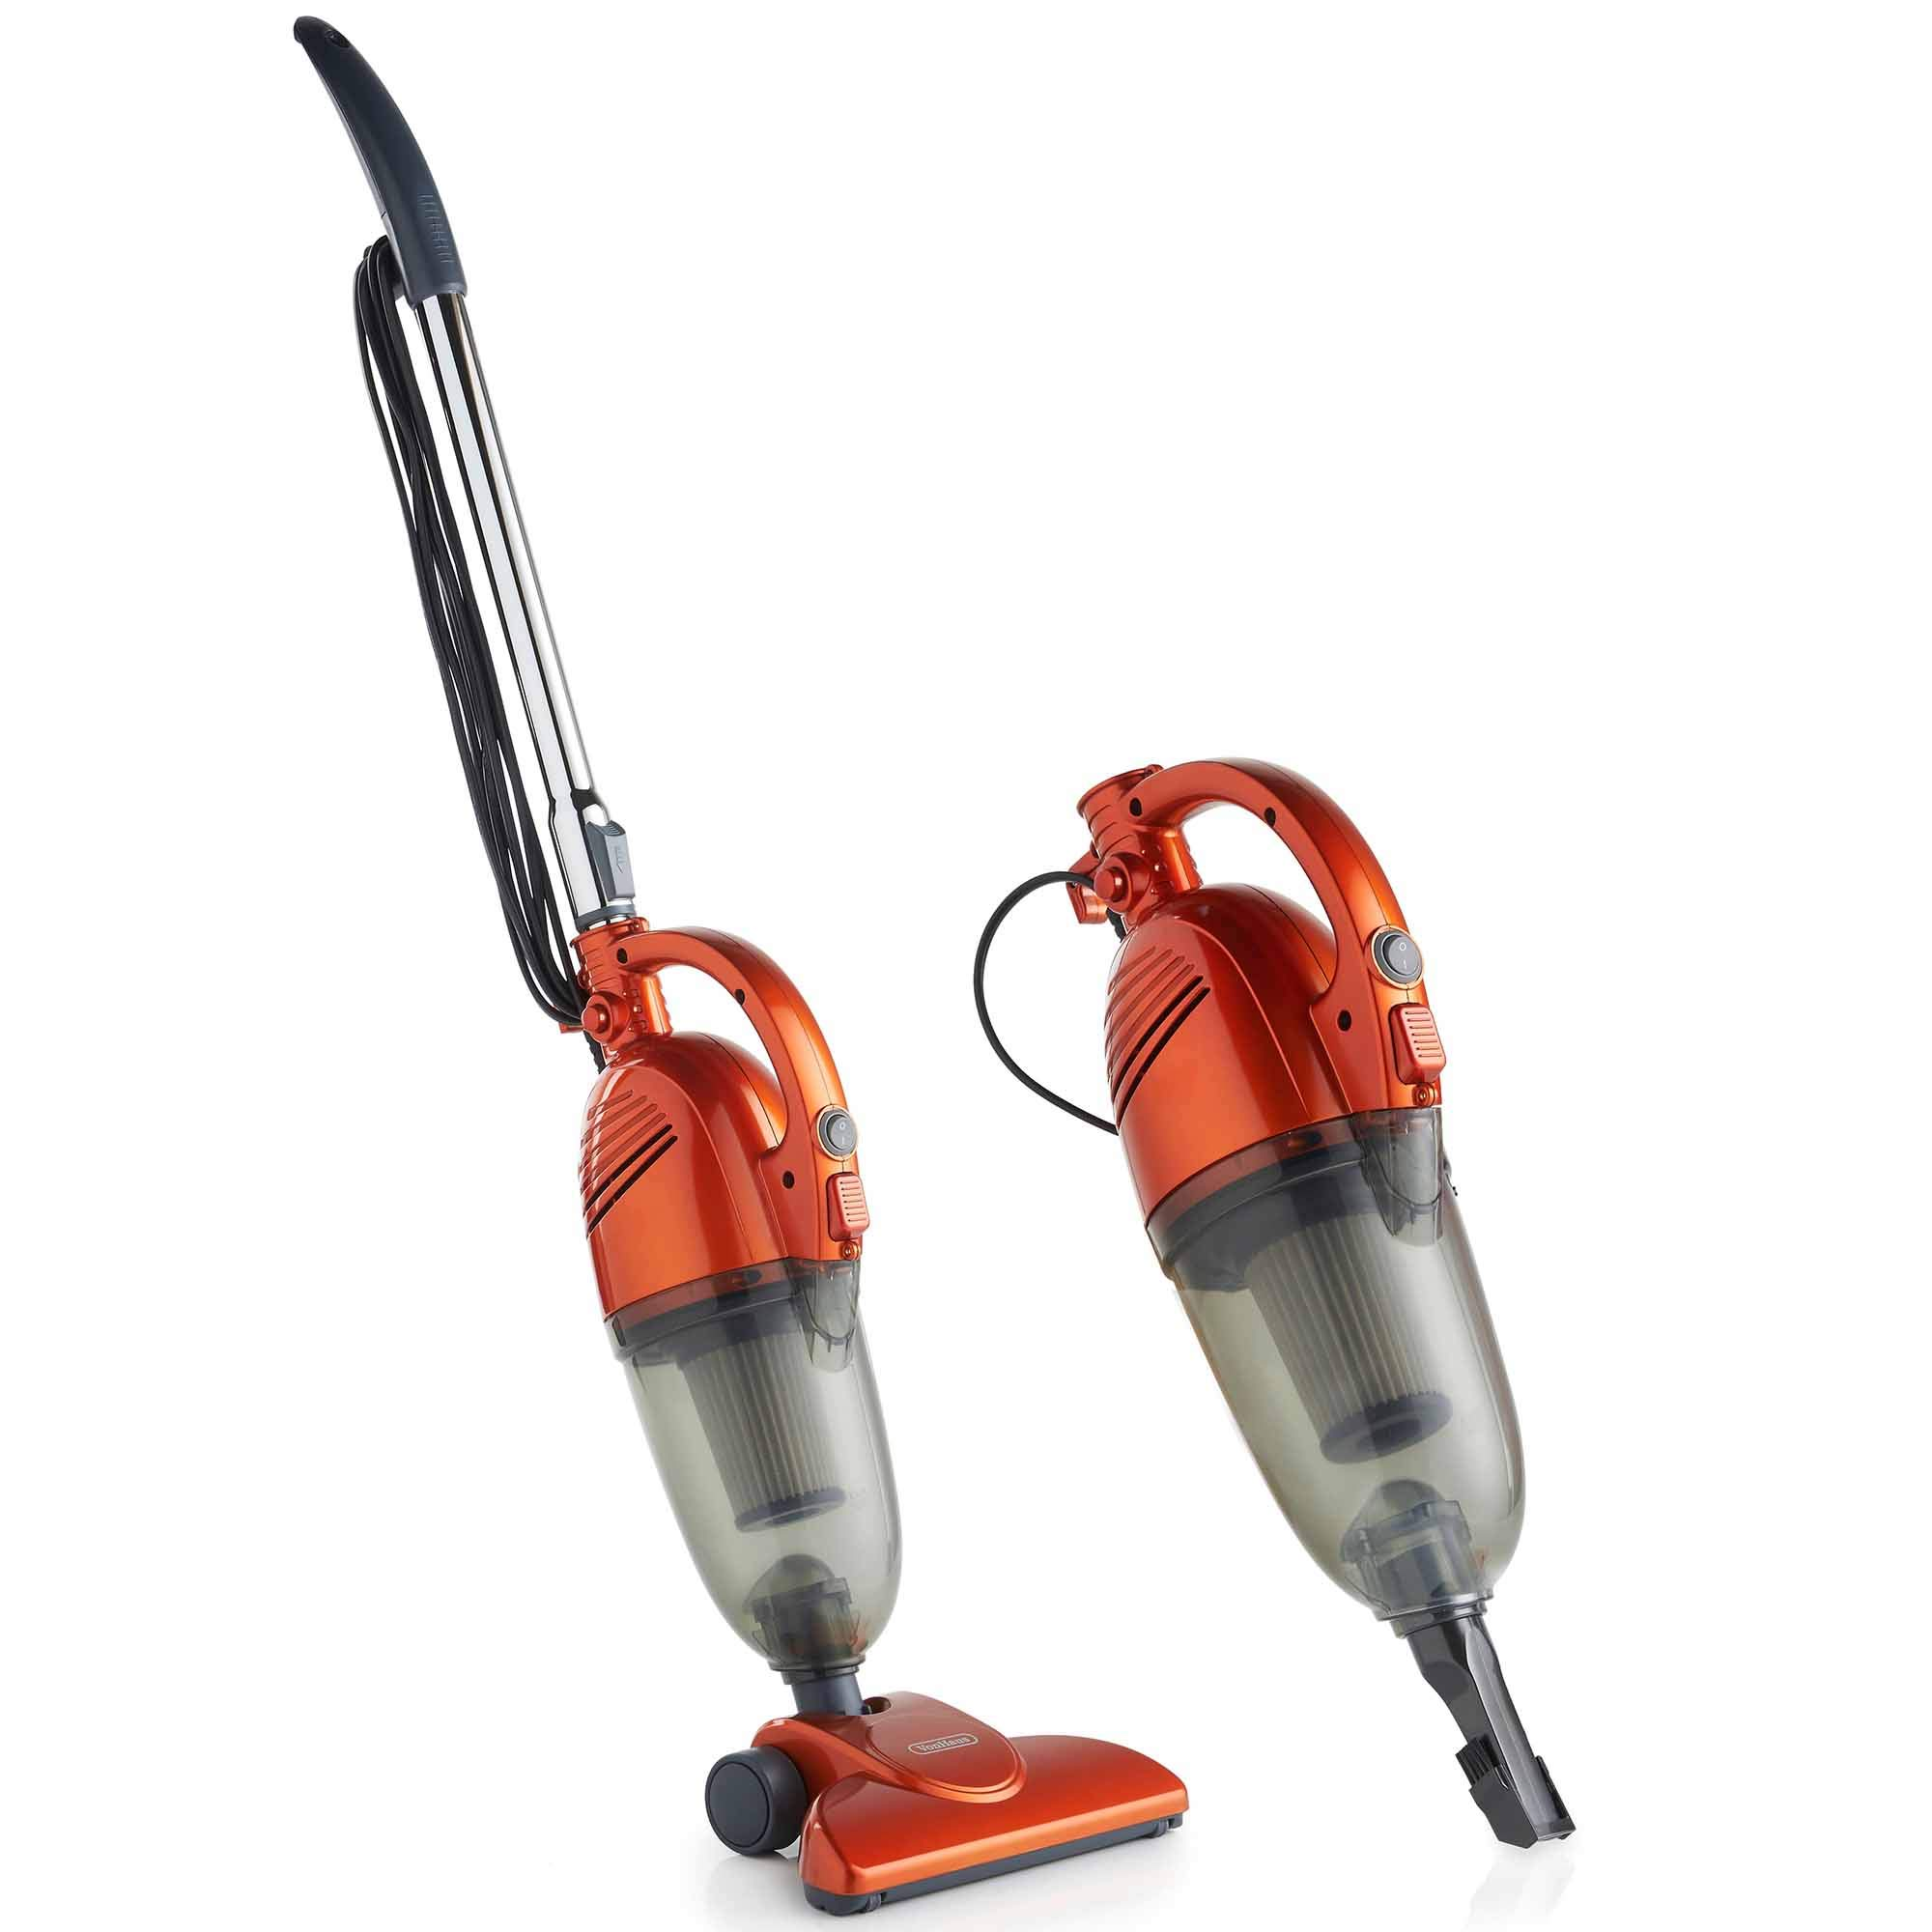 VonHaus 2 in 1 Stick & Handheld Vacuum Cleaner - 600W Corded Upright Vac with Lightweight Design, HEPA Filtration, Extendable Handle, Crevice Tool and Brush Accessories - Ideal for Hardwood Floors by VonHaus